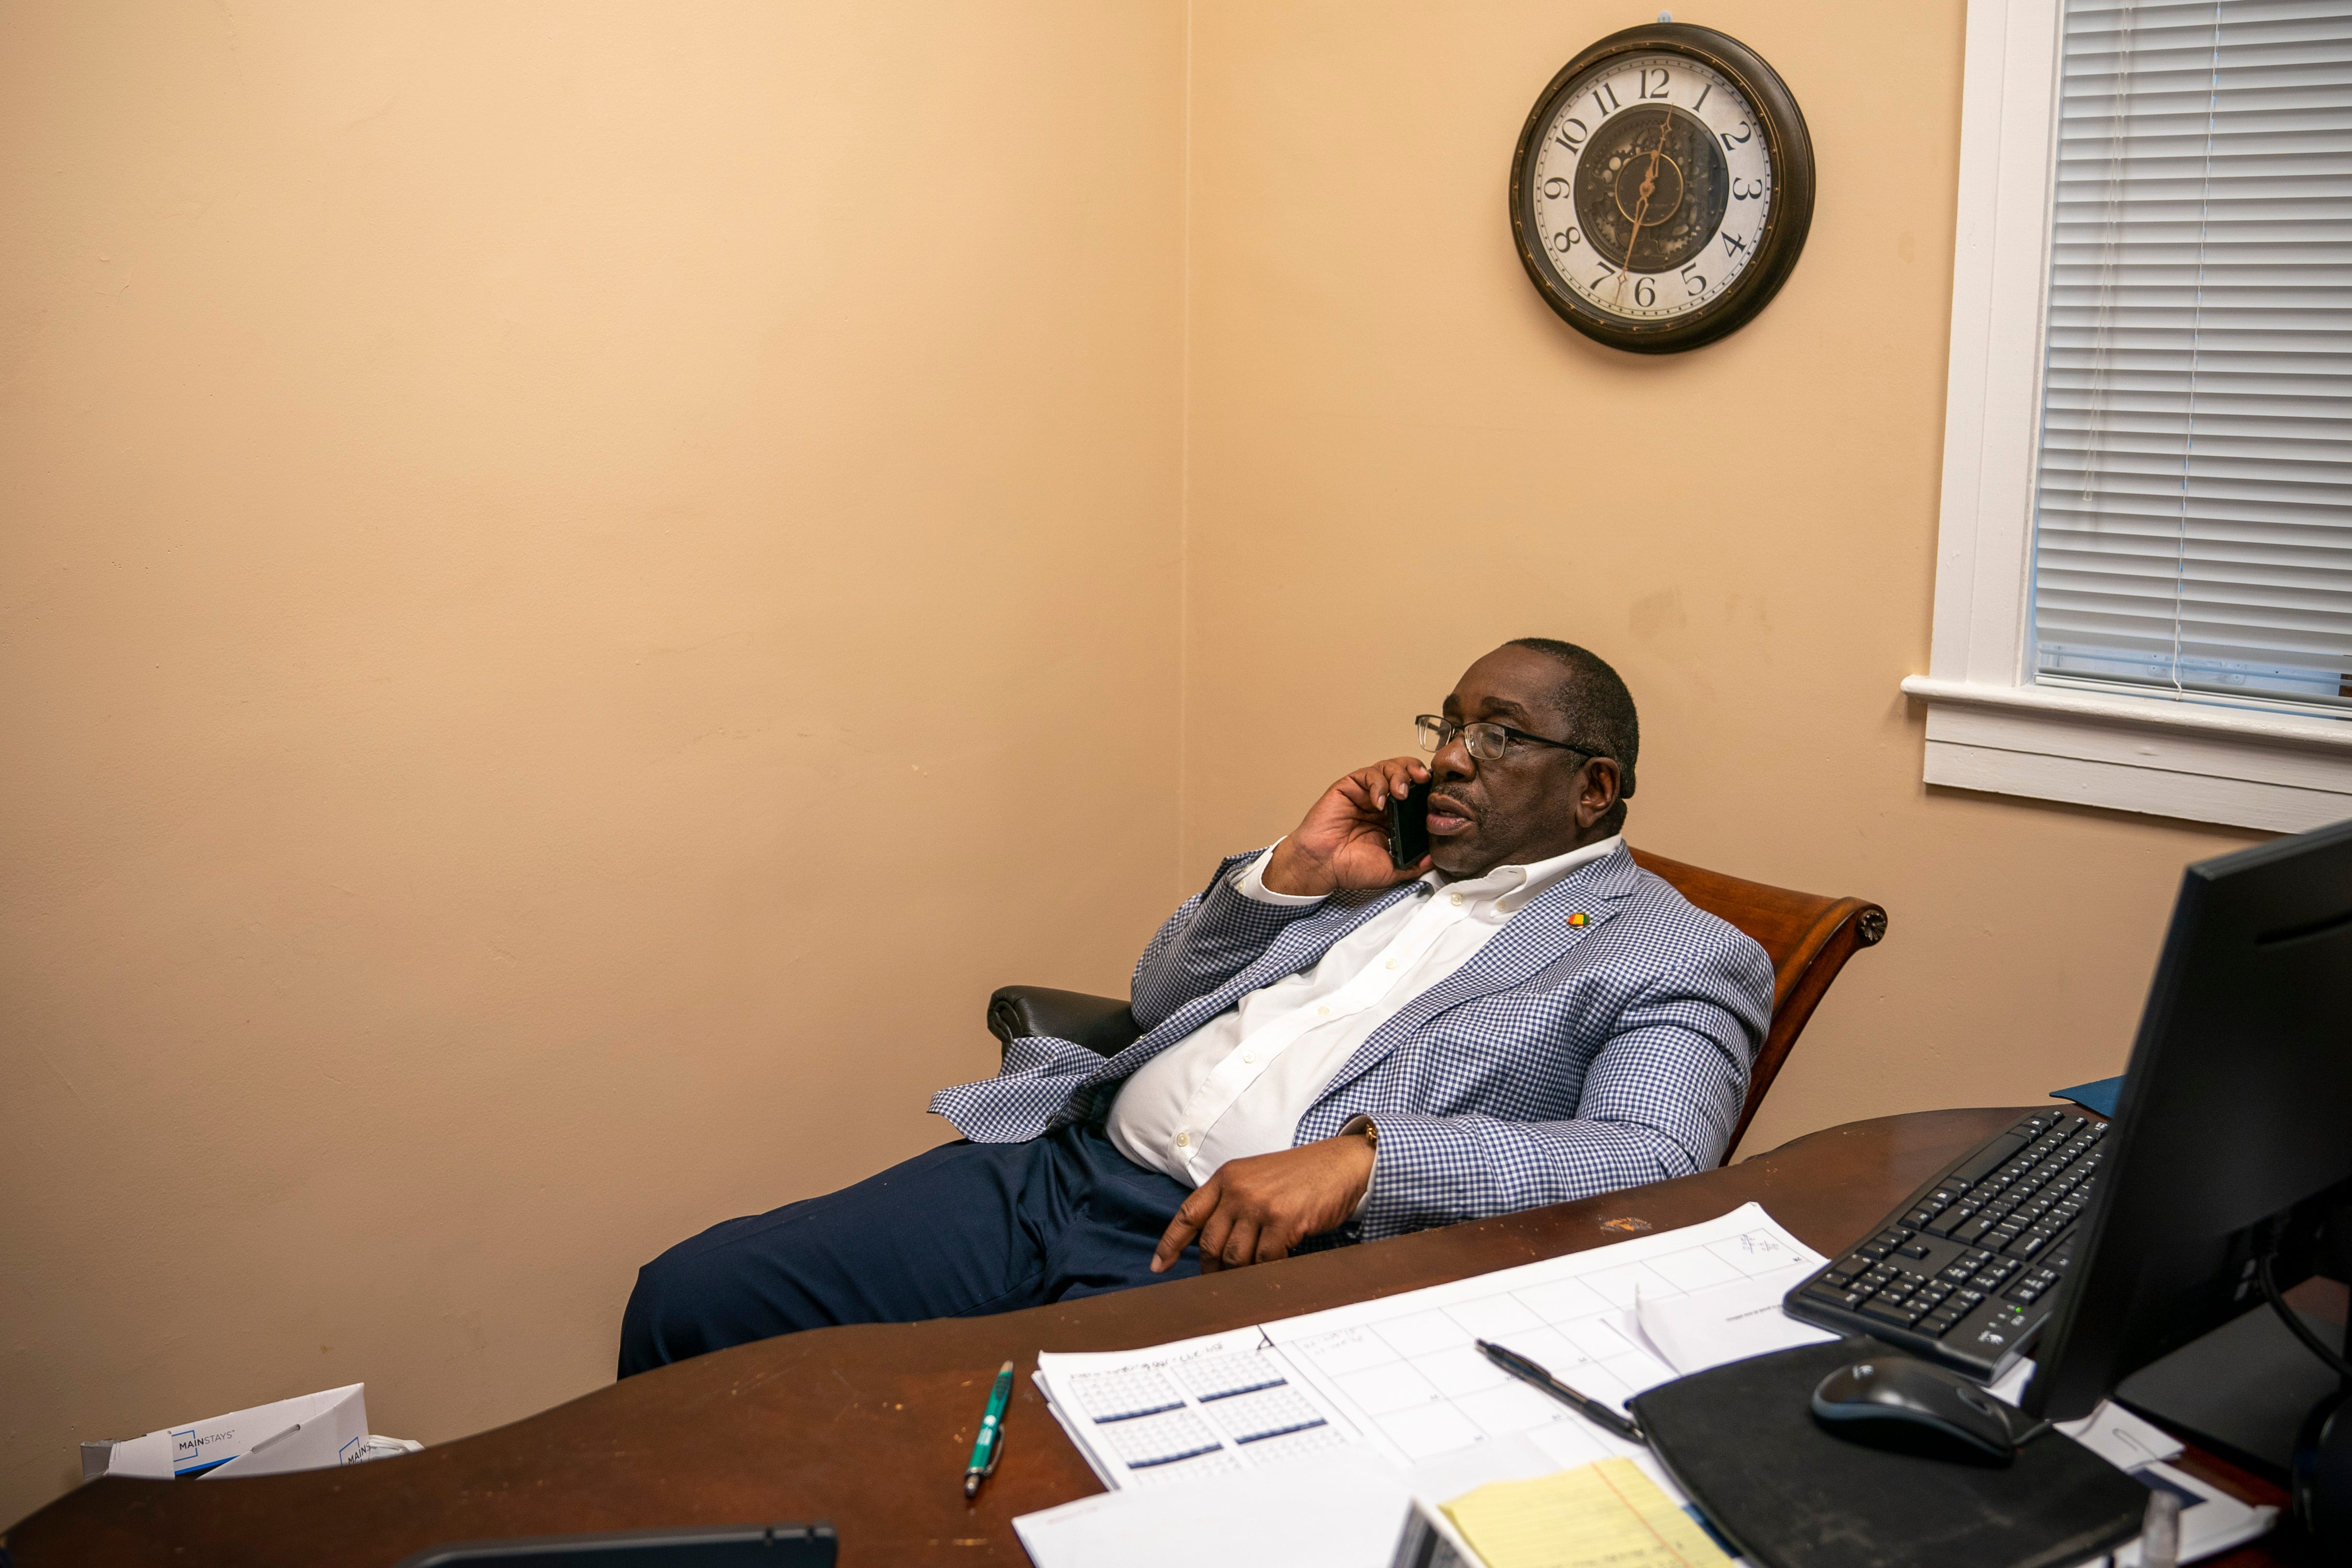 Perry County Commissioner Albert Turner Jr. talks on the phone in his office at the Perry County Courthouse, March 31, 2021. Turner's father, Albert Turner, was a civil rights activist who helped lead the voting rights march from Selma to Montgomery in 1965 after Jimmie Lee Jackson's death.